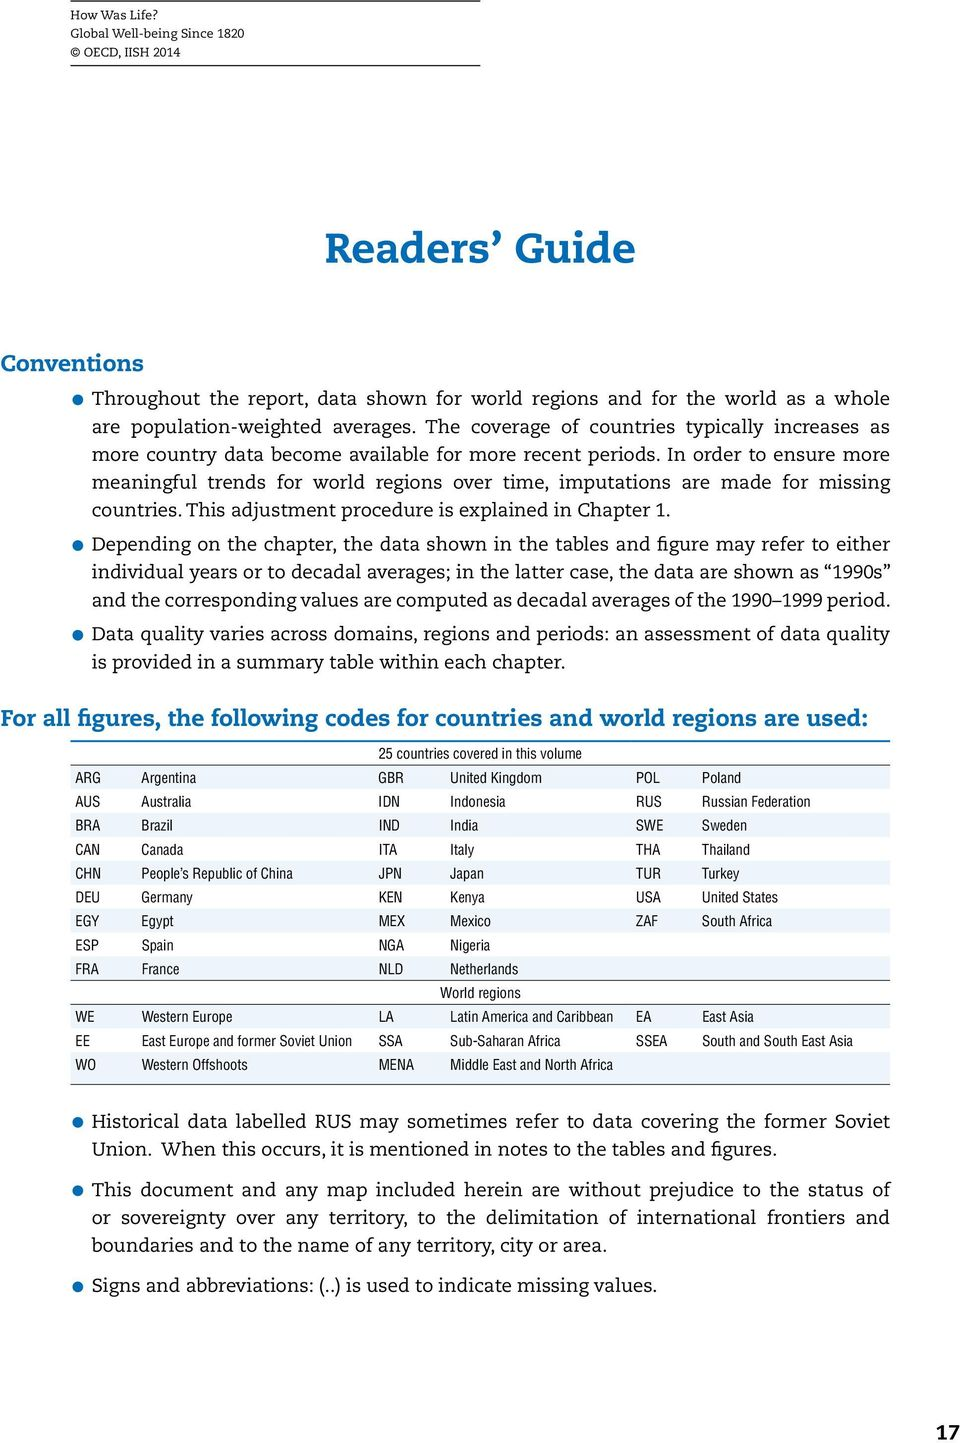 In order to ensure more meaningful trends for world regions over time, imputations are made for missing countries. This adjustment procedure is explained in Chapter 1.